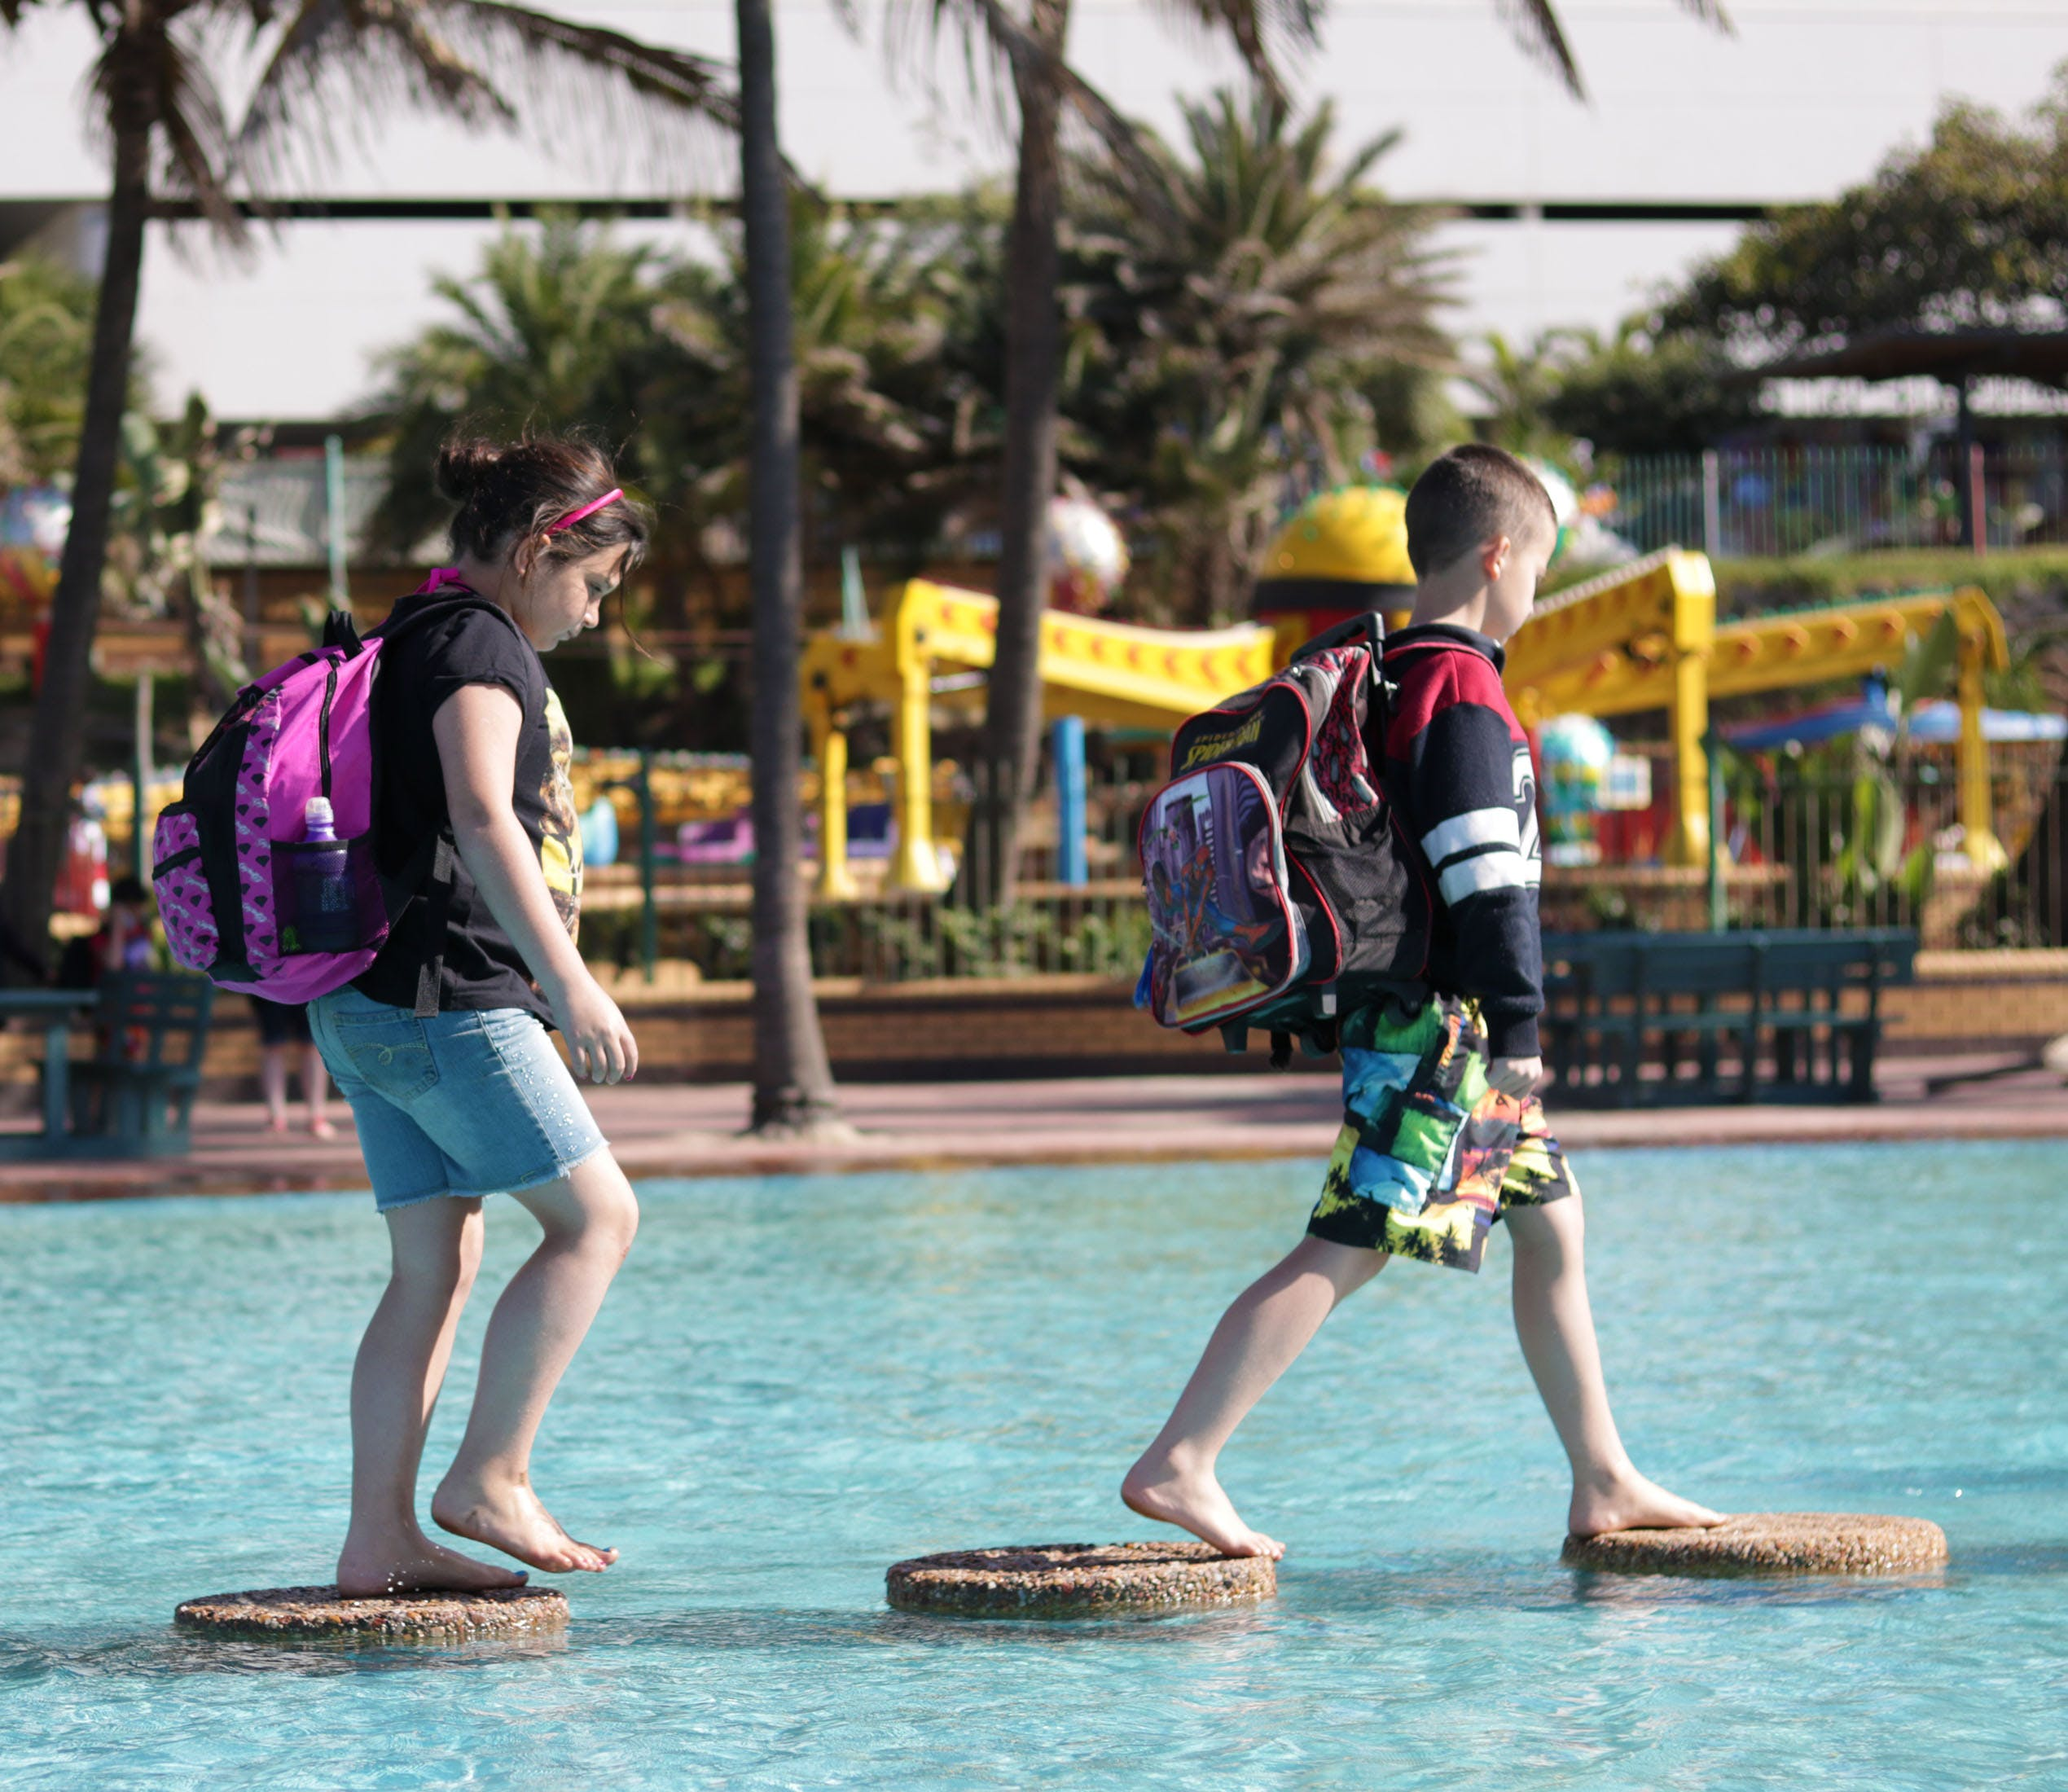 Free stock photo of children walking on water